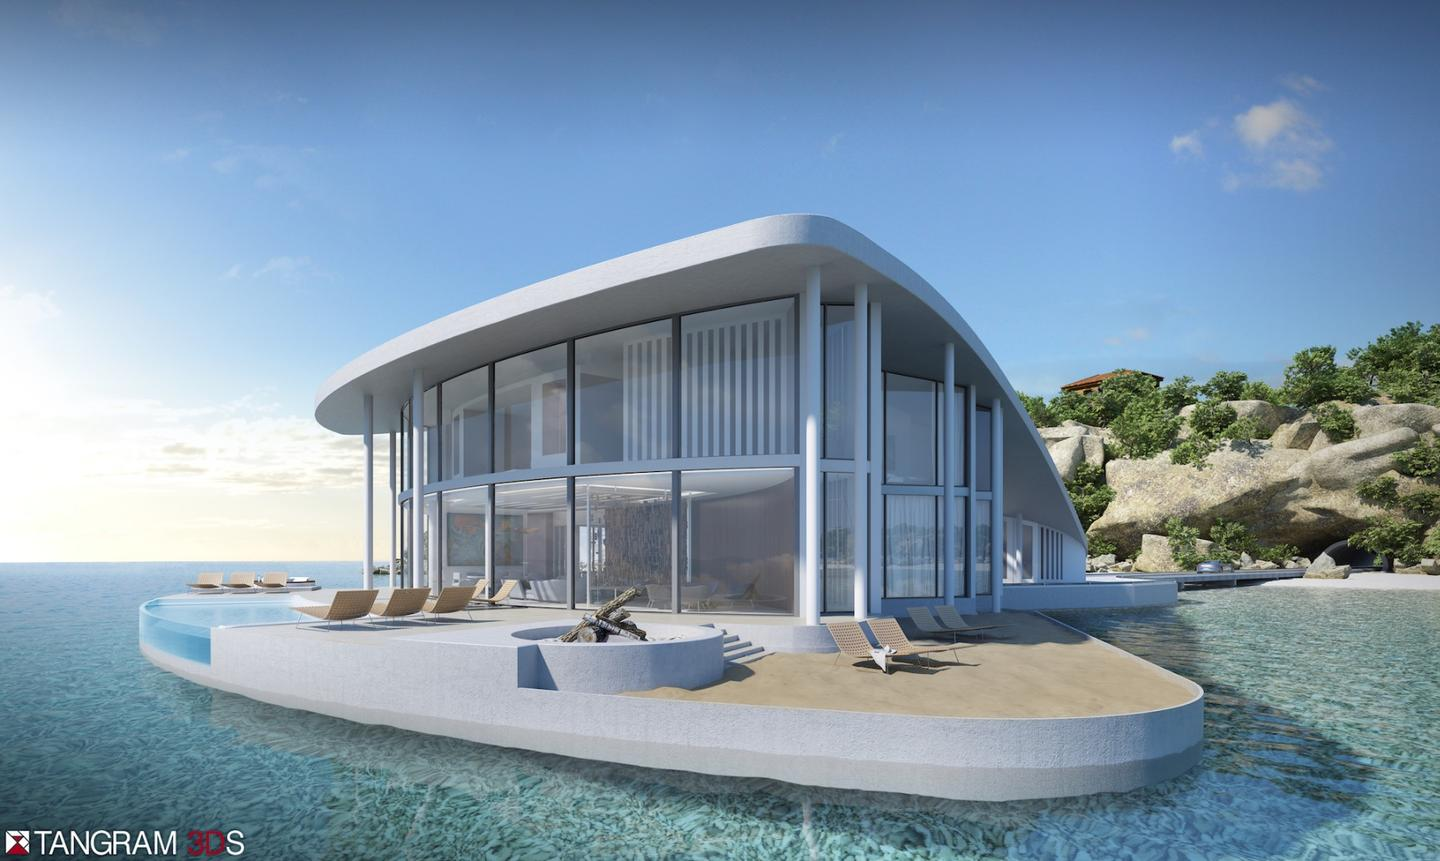 The aptly-named Sting Ray will comprise concrete and metal panels and generous glazing throughout